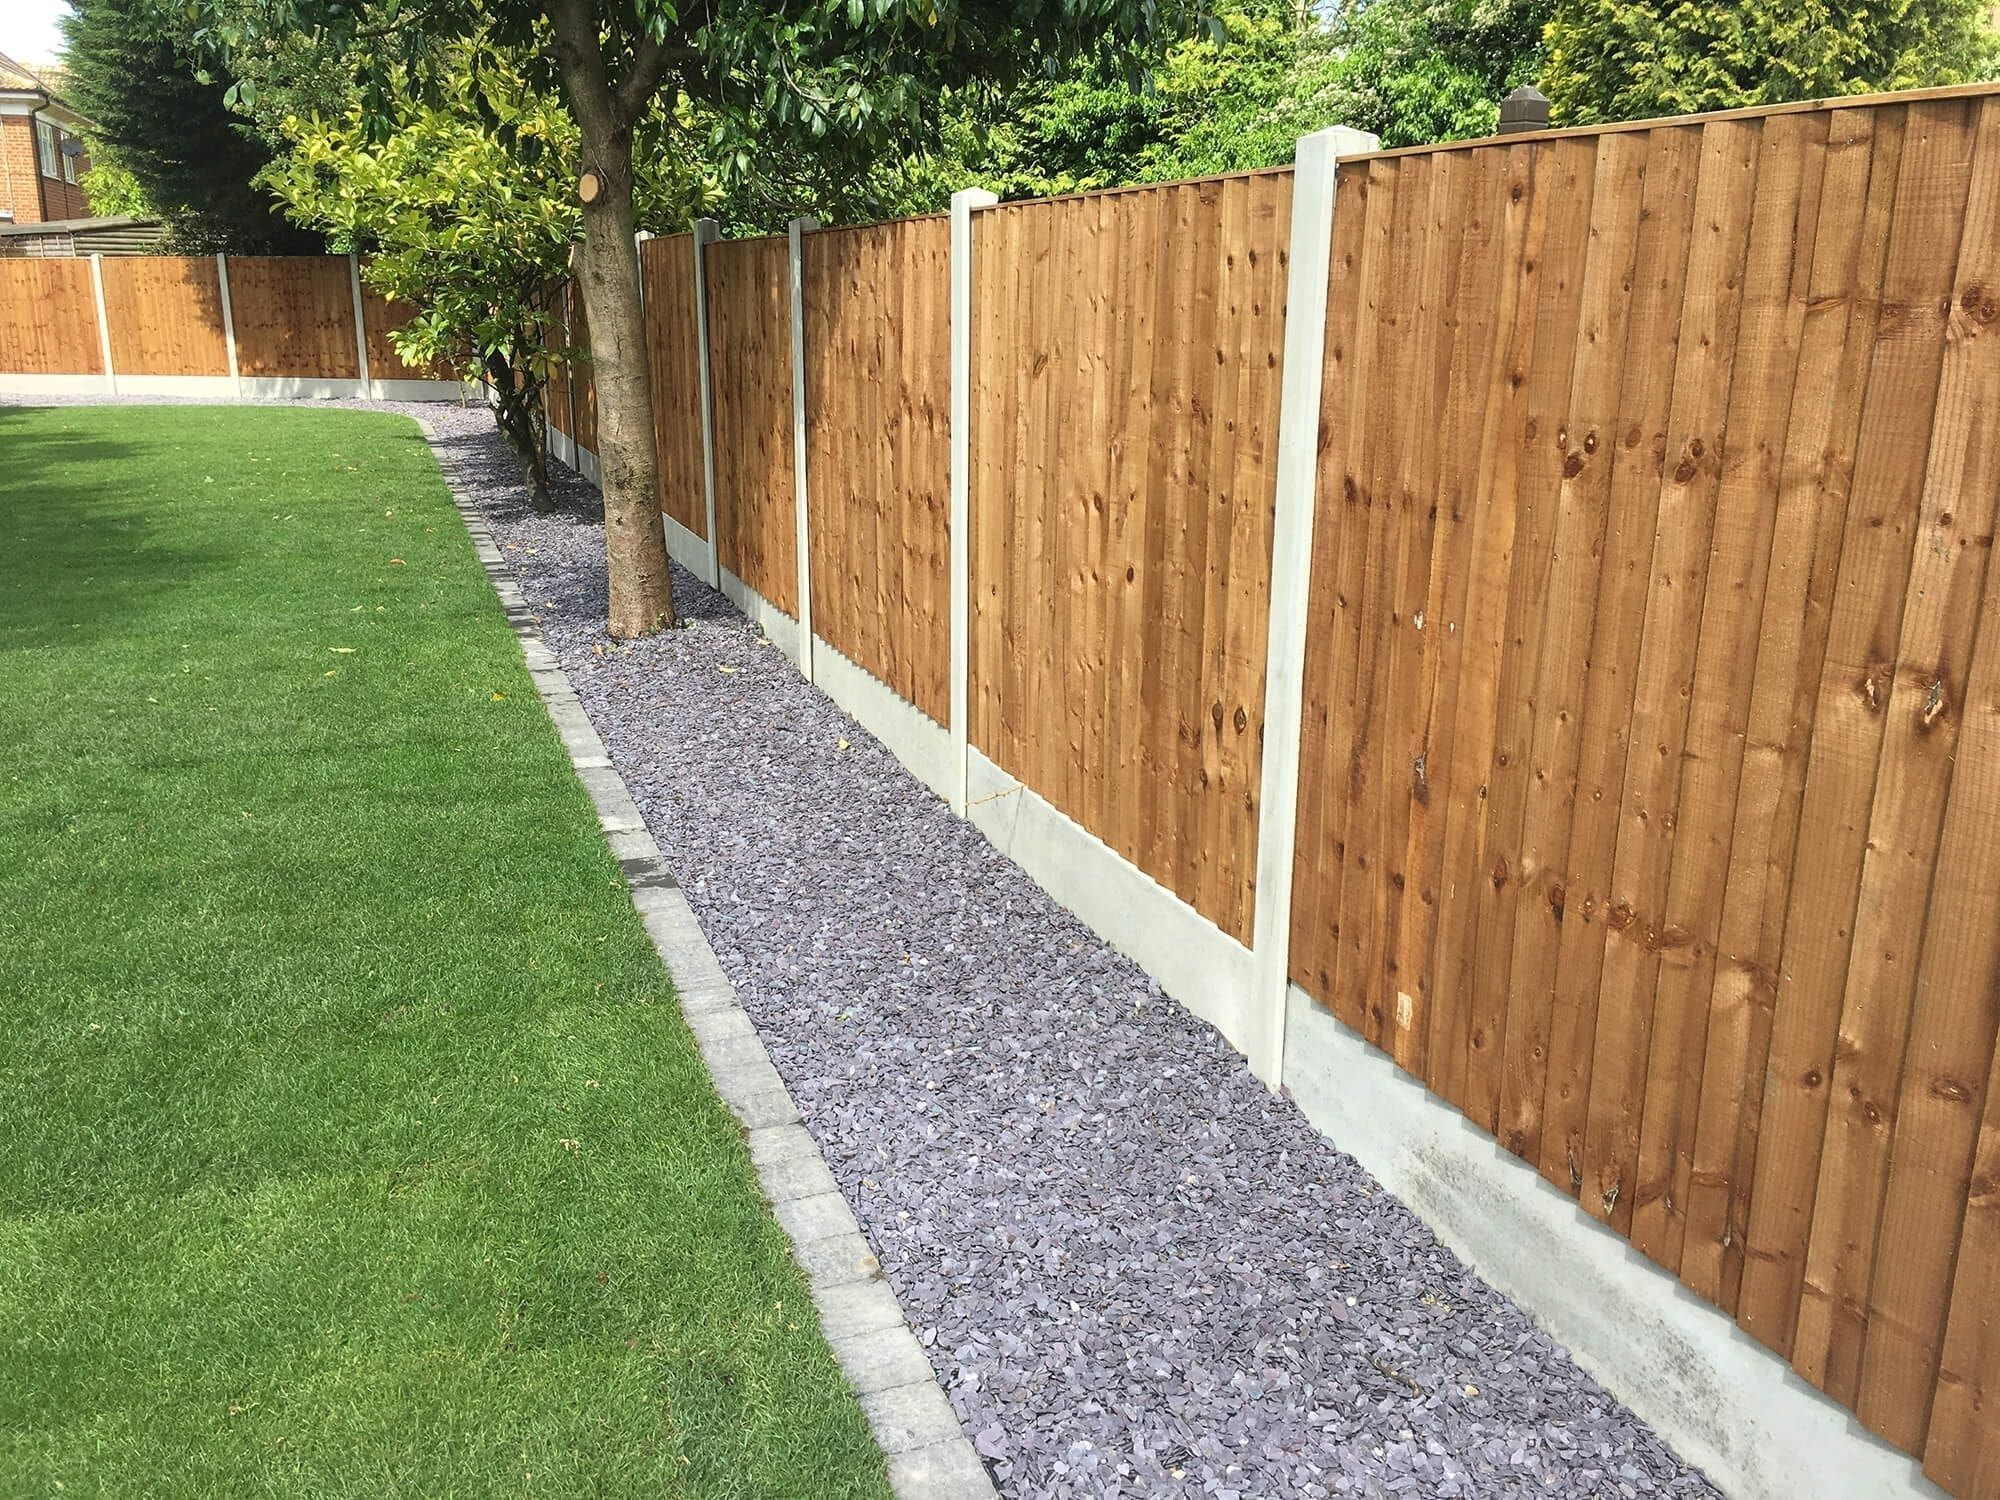 Photo of fence in garden